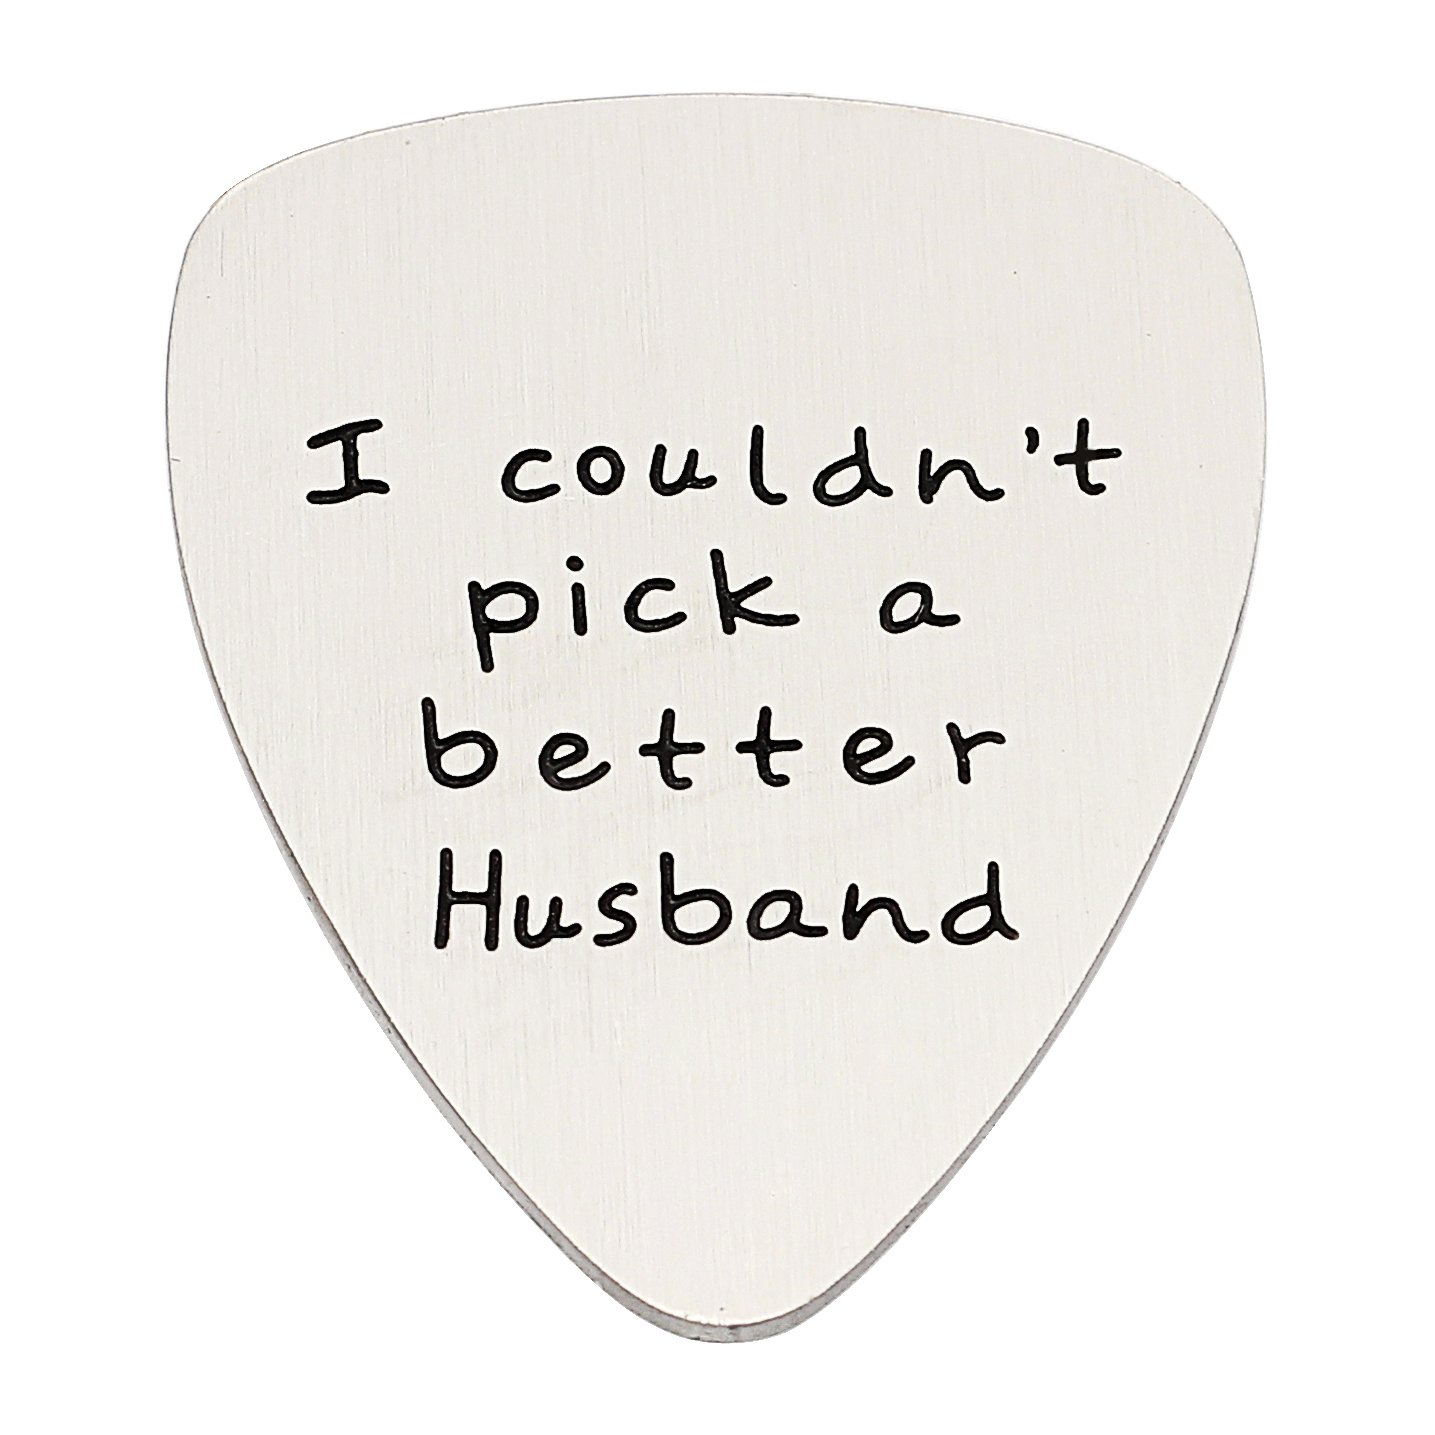 Husband Gifts Gift for Men I Couldn't Pick a Better Husband Guitar Pick Valentine Anniversary Christmas lauhonmin